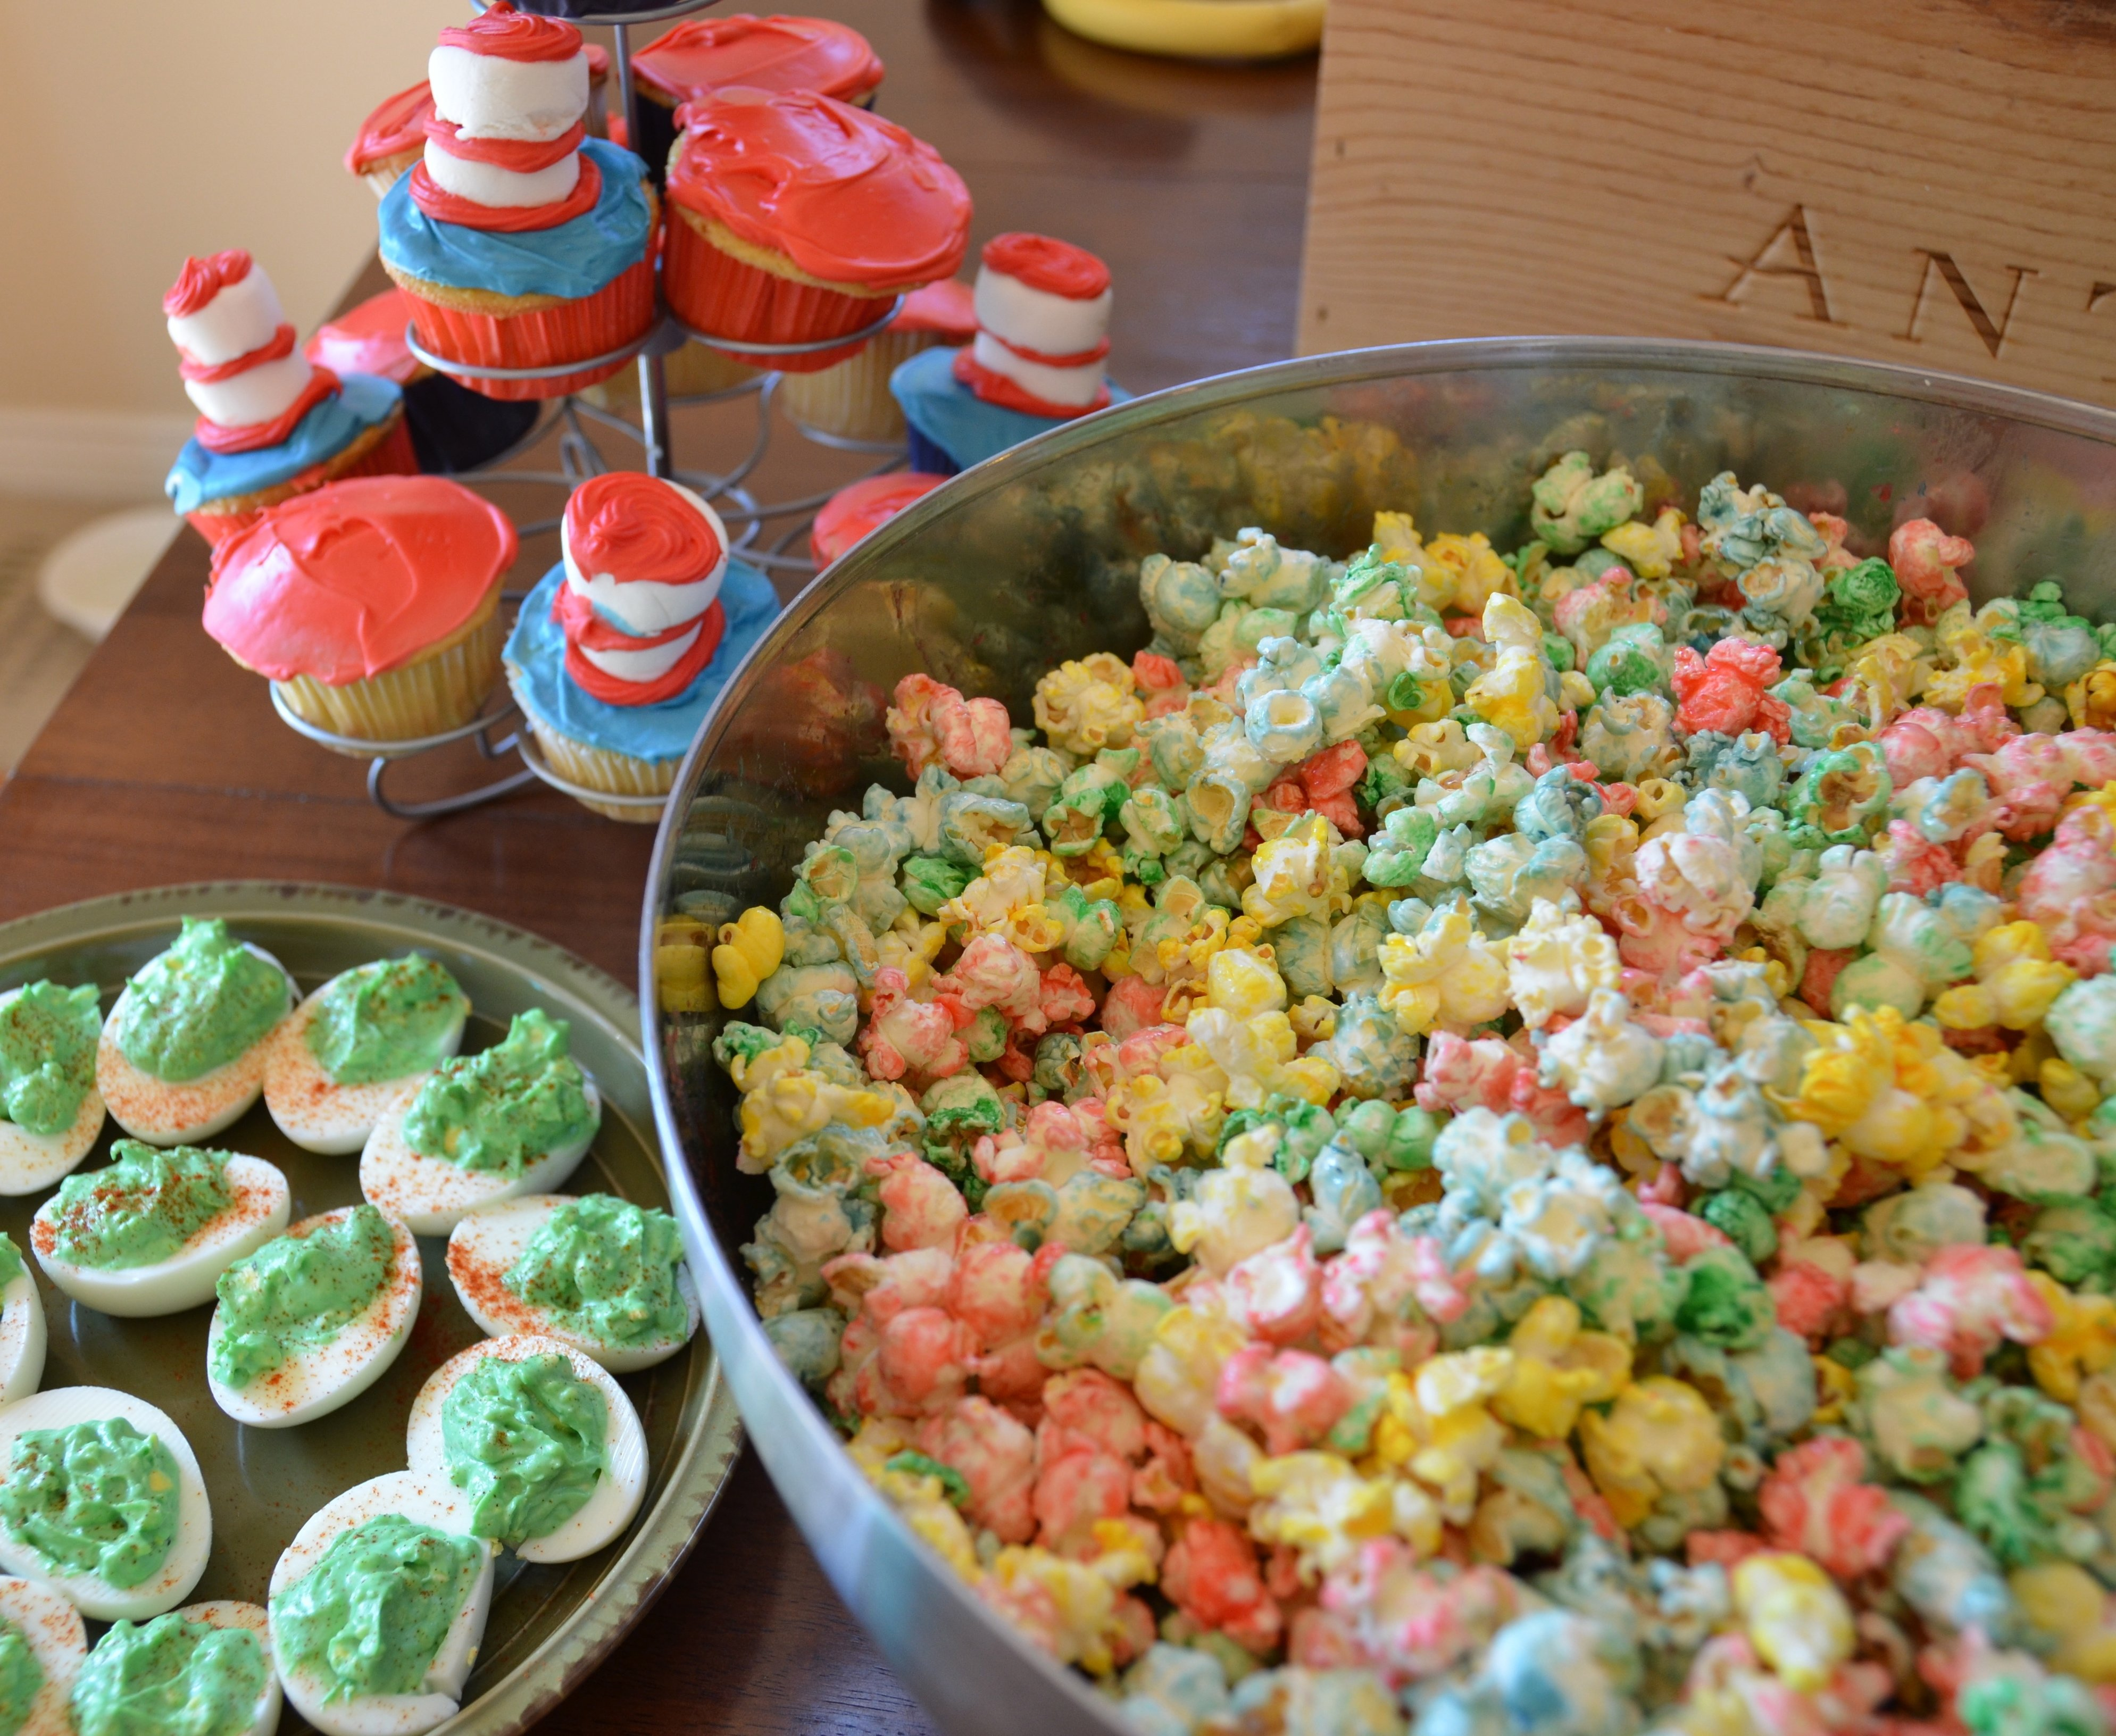 10 Ideal Baby Shower Menu Ideas On A Budget baby shower foods on a budget wedding 4 2020